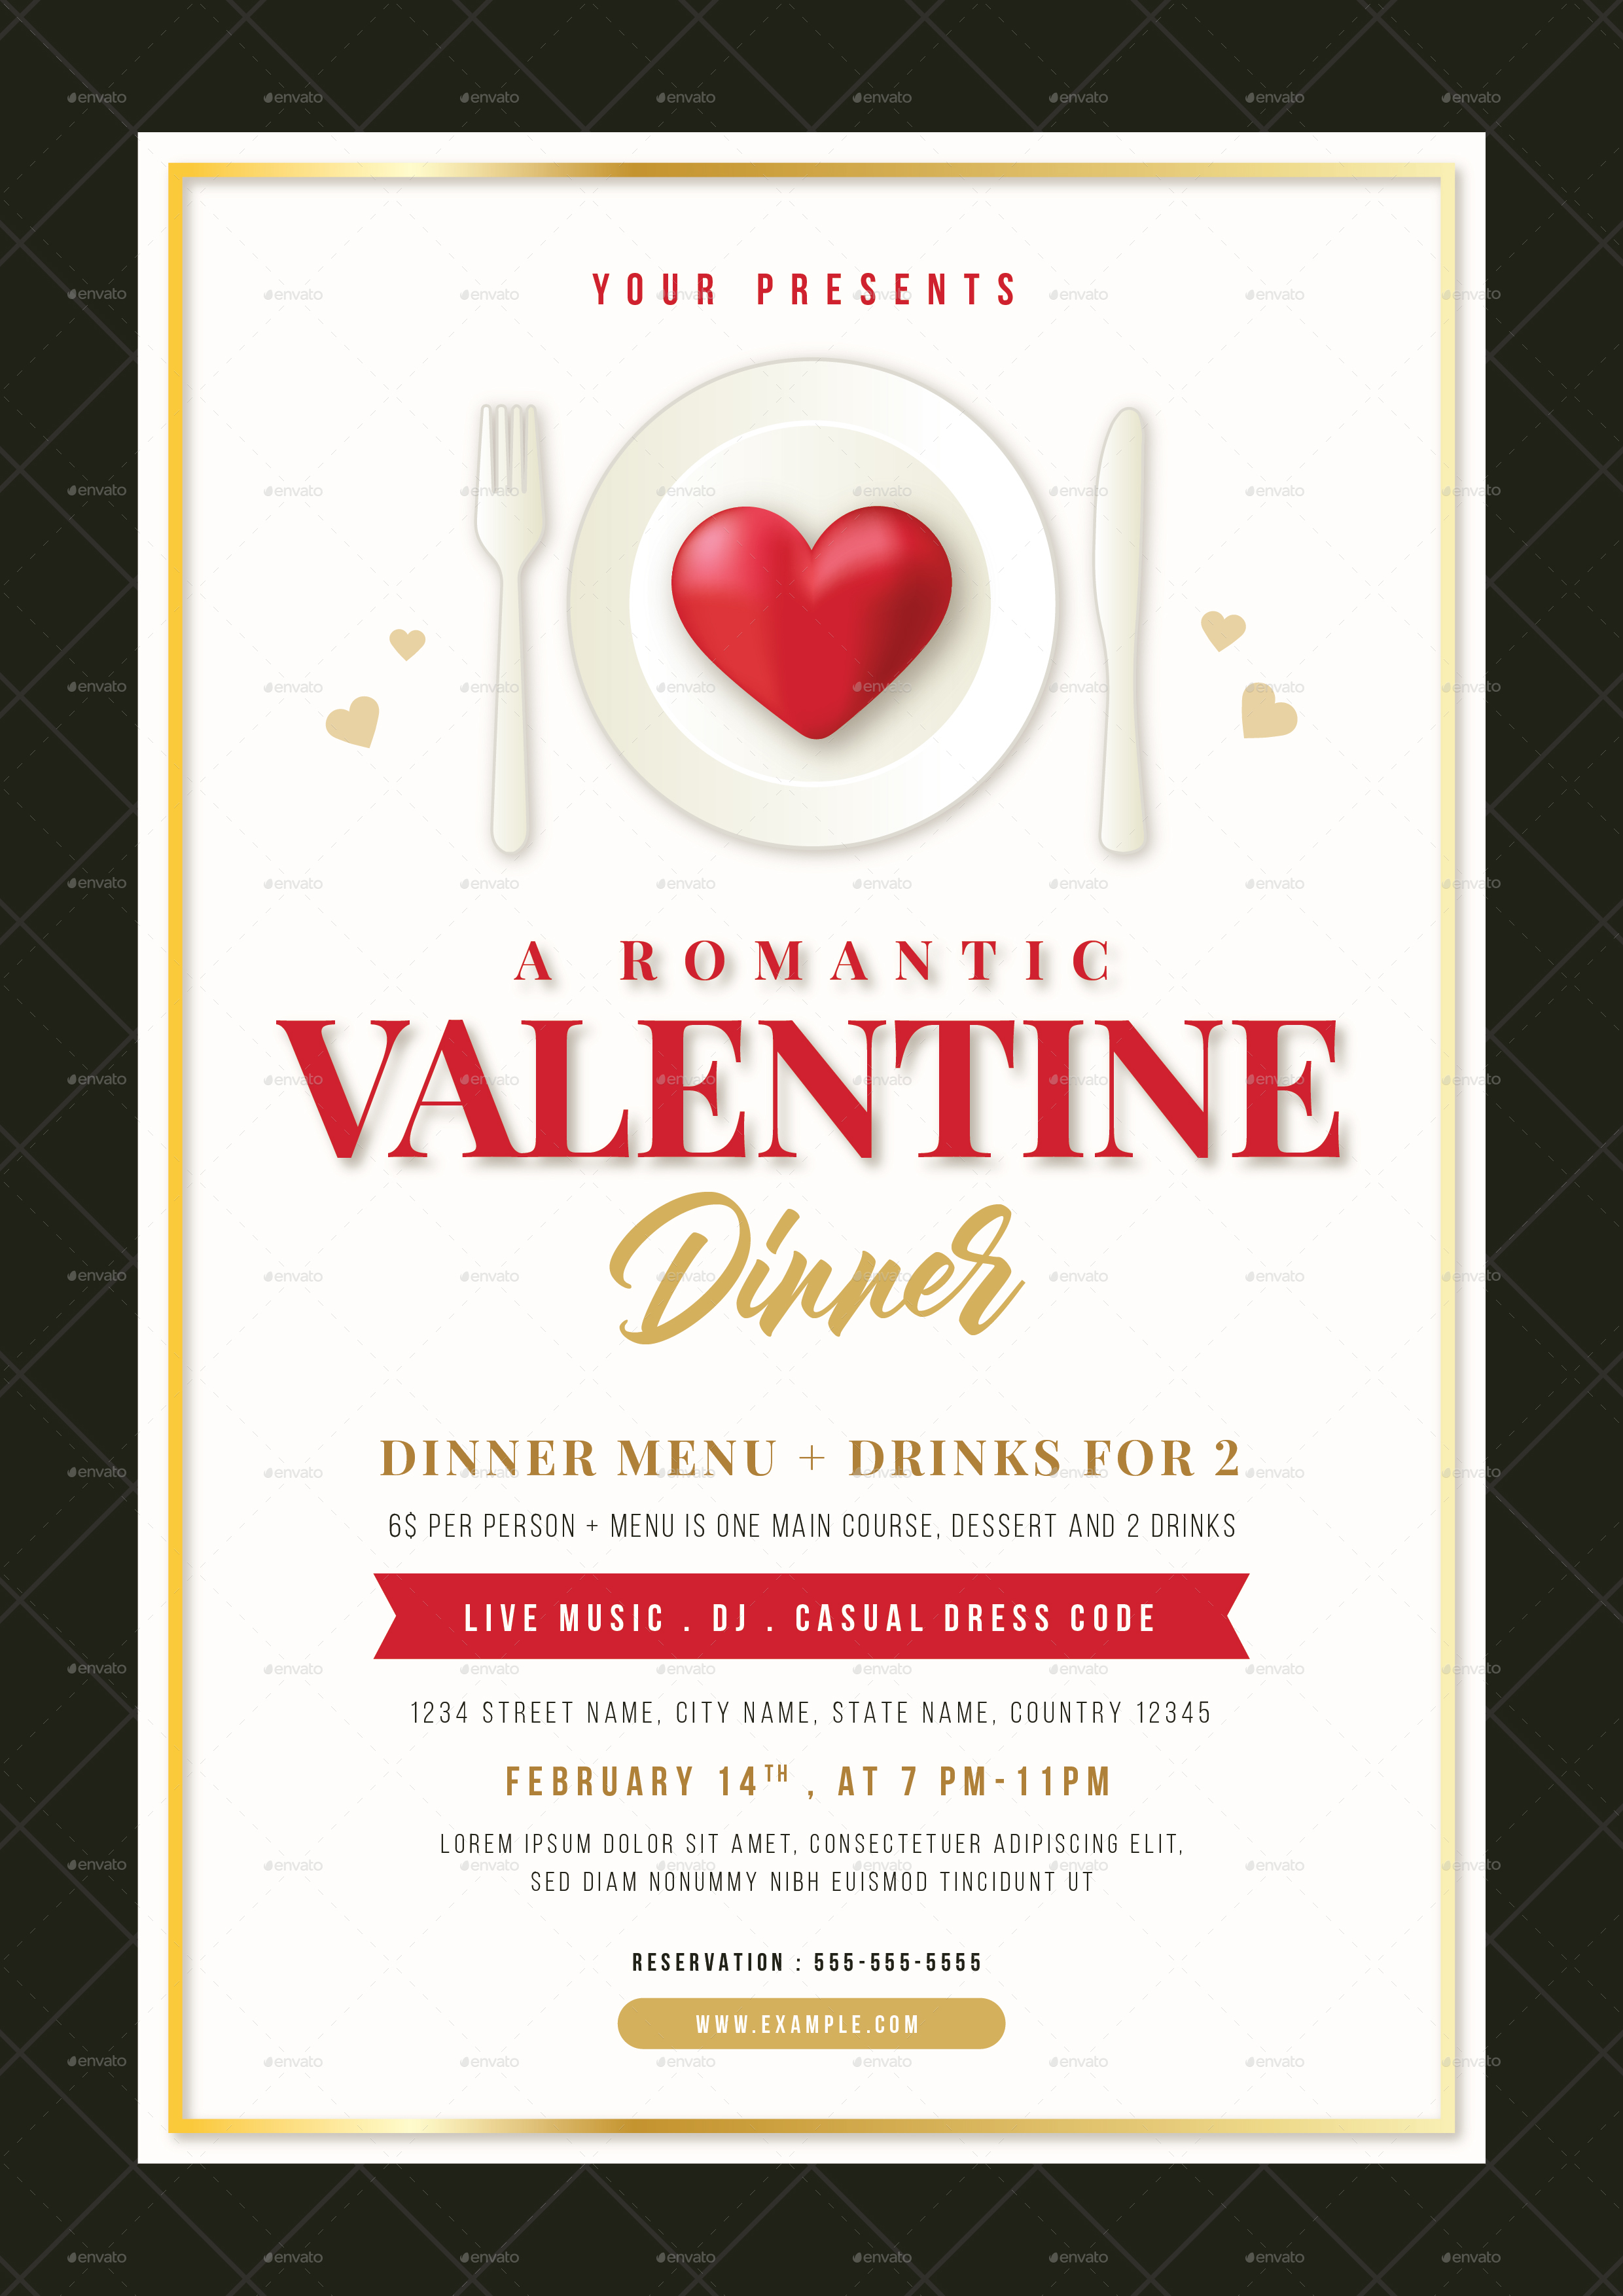 Valentine Dinner Flyer Amp Menu Template By VectorVactory